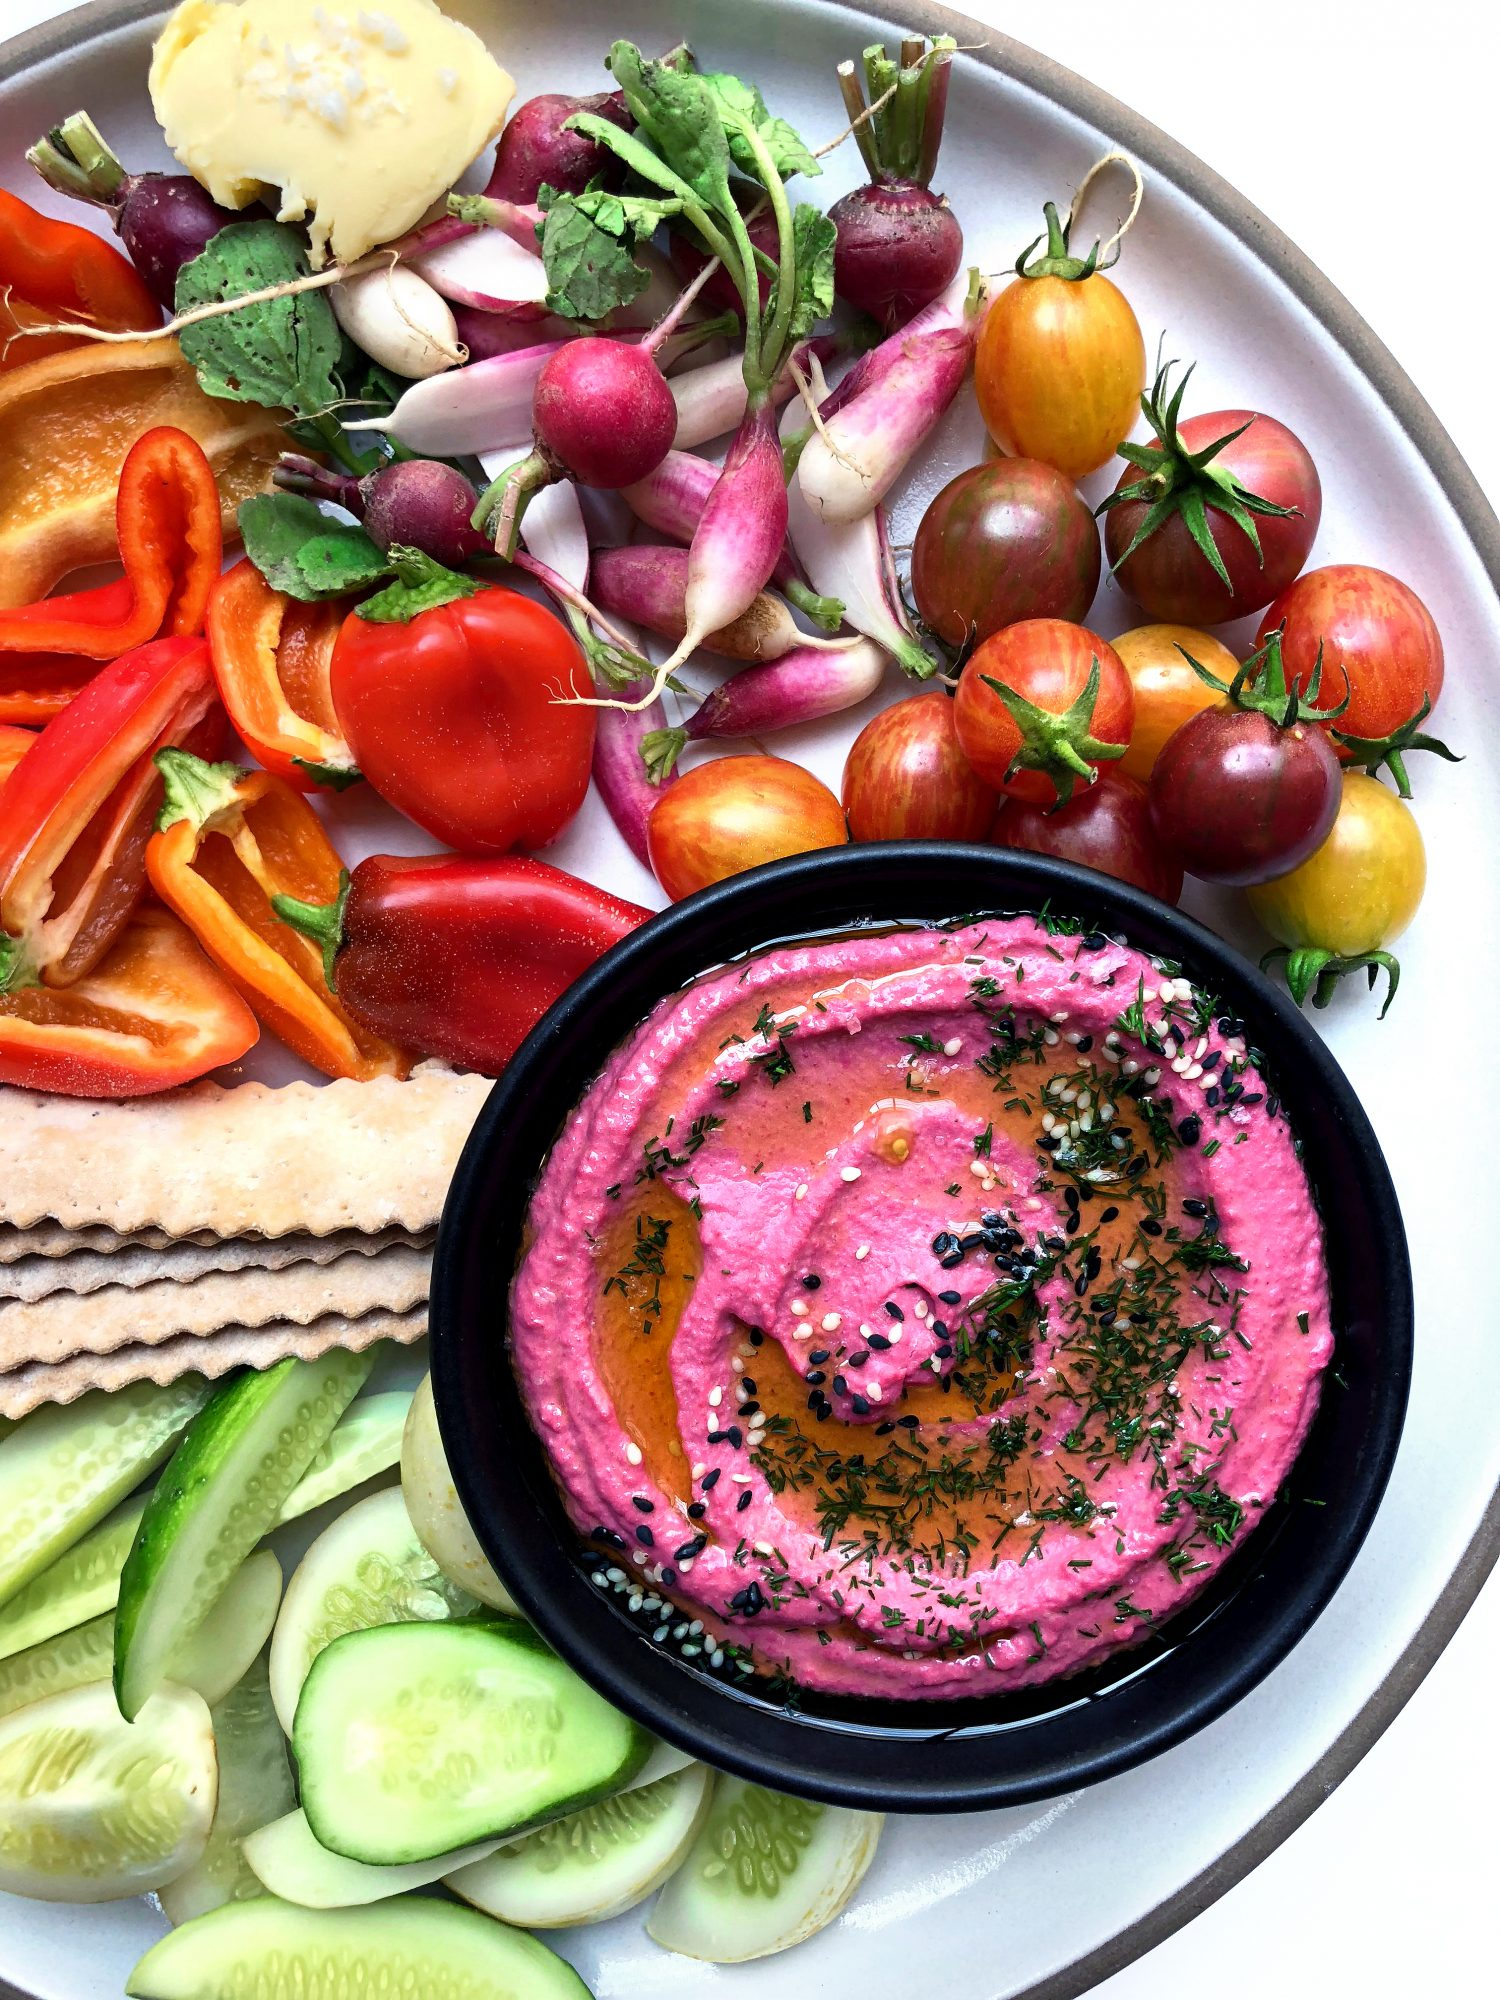 You Won't Believe How Easy It Is to Make This Beet Hummus Recipe